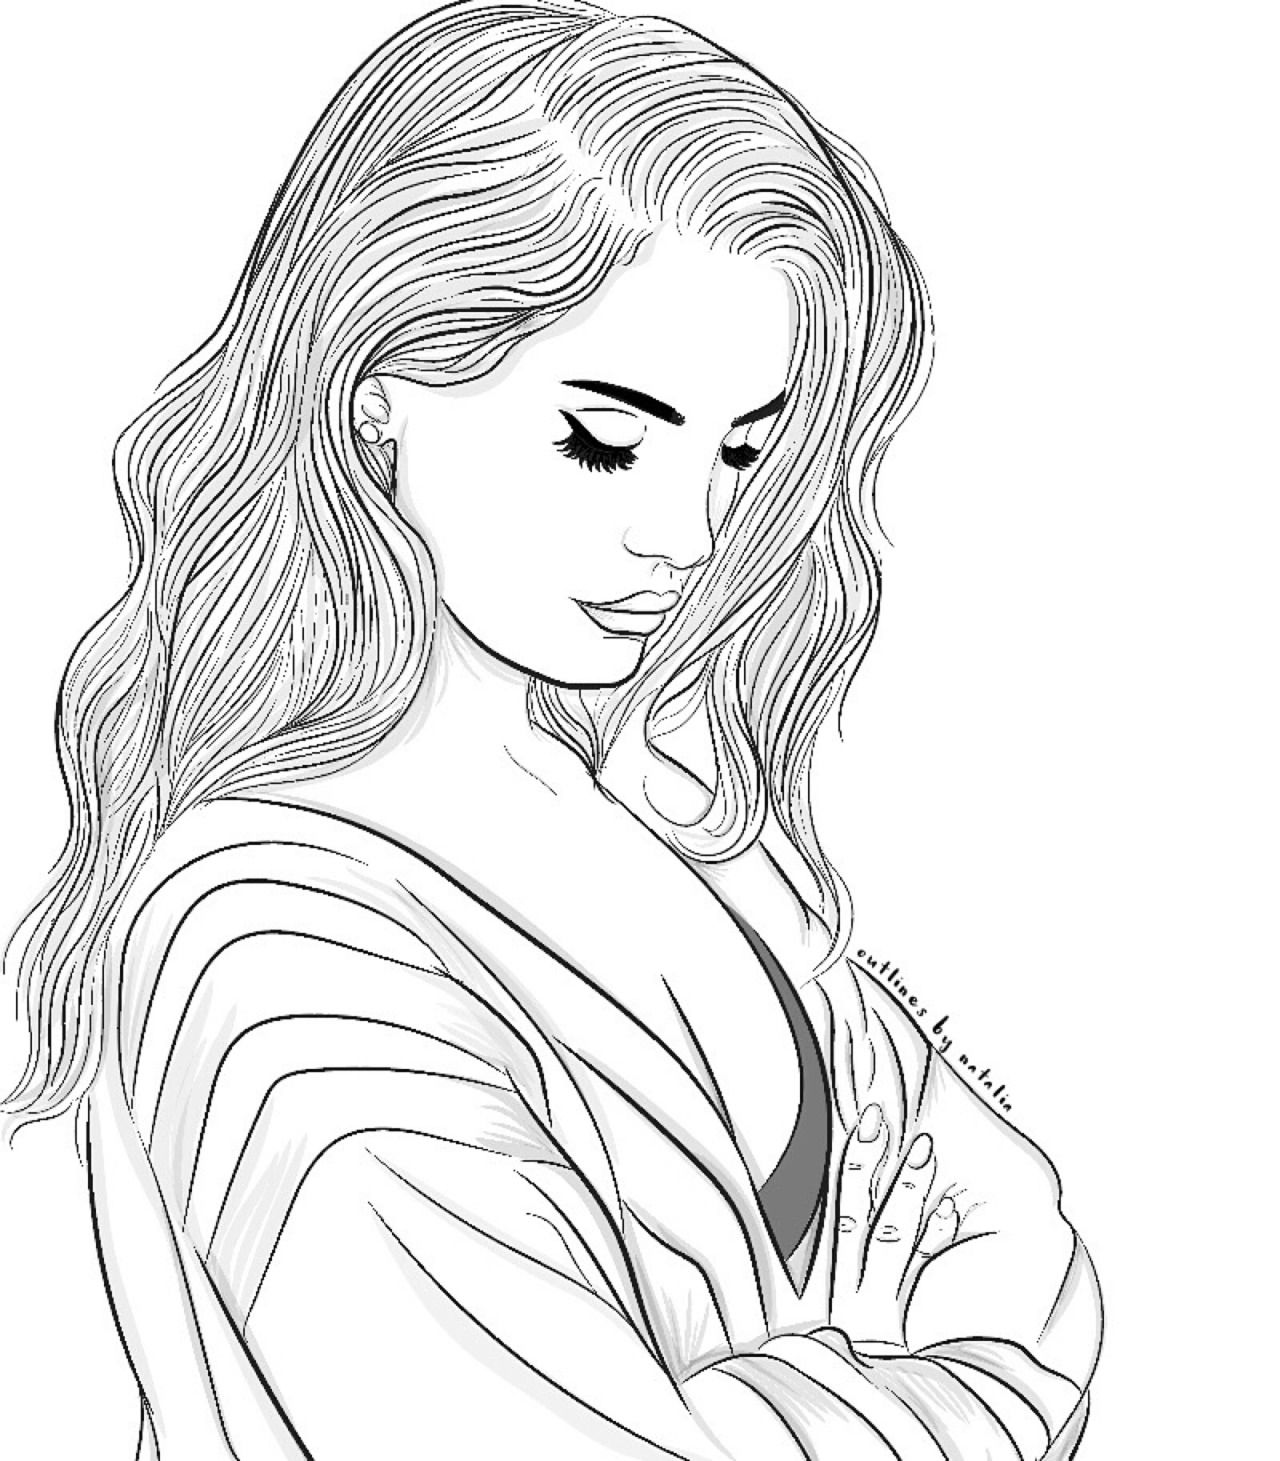 tumblr girl coloring pages pin op tumblr girls blackwhite tumblr coloring girl pages